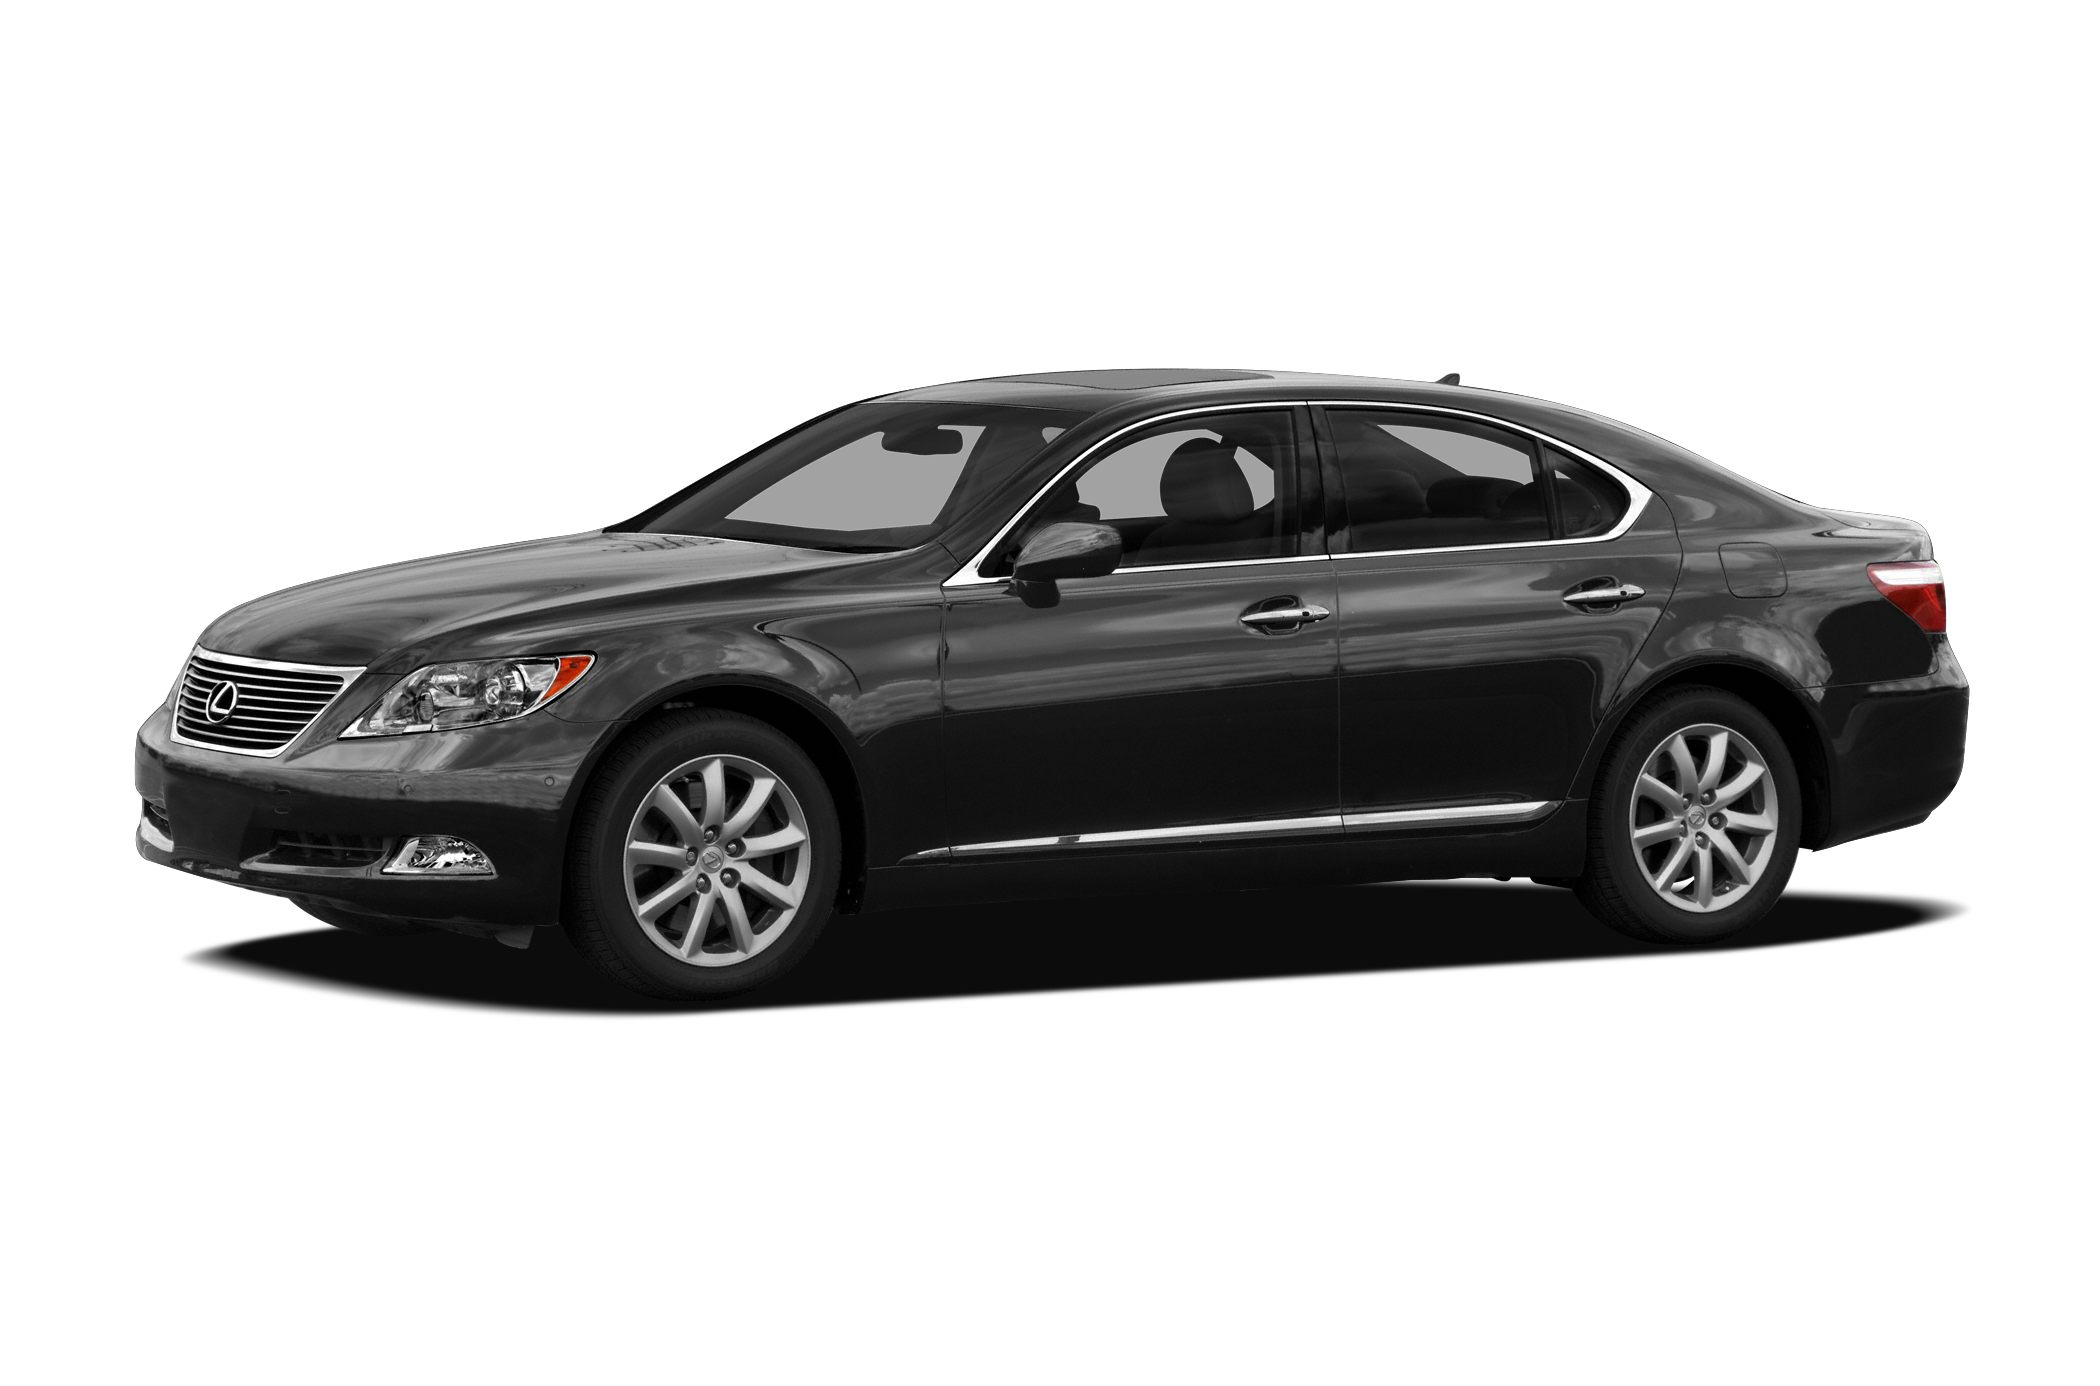 2009 Lexus LS 460 Base 4dr All wheel Drive Sedan Information